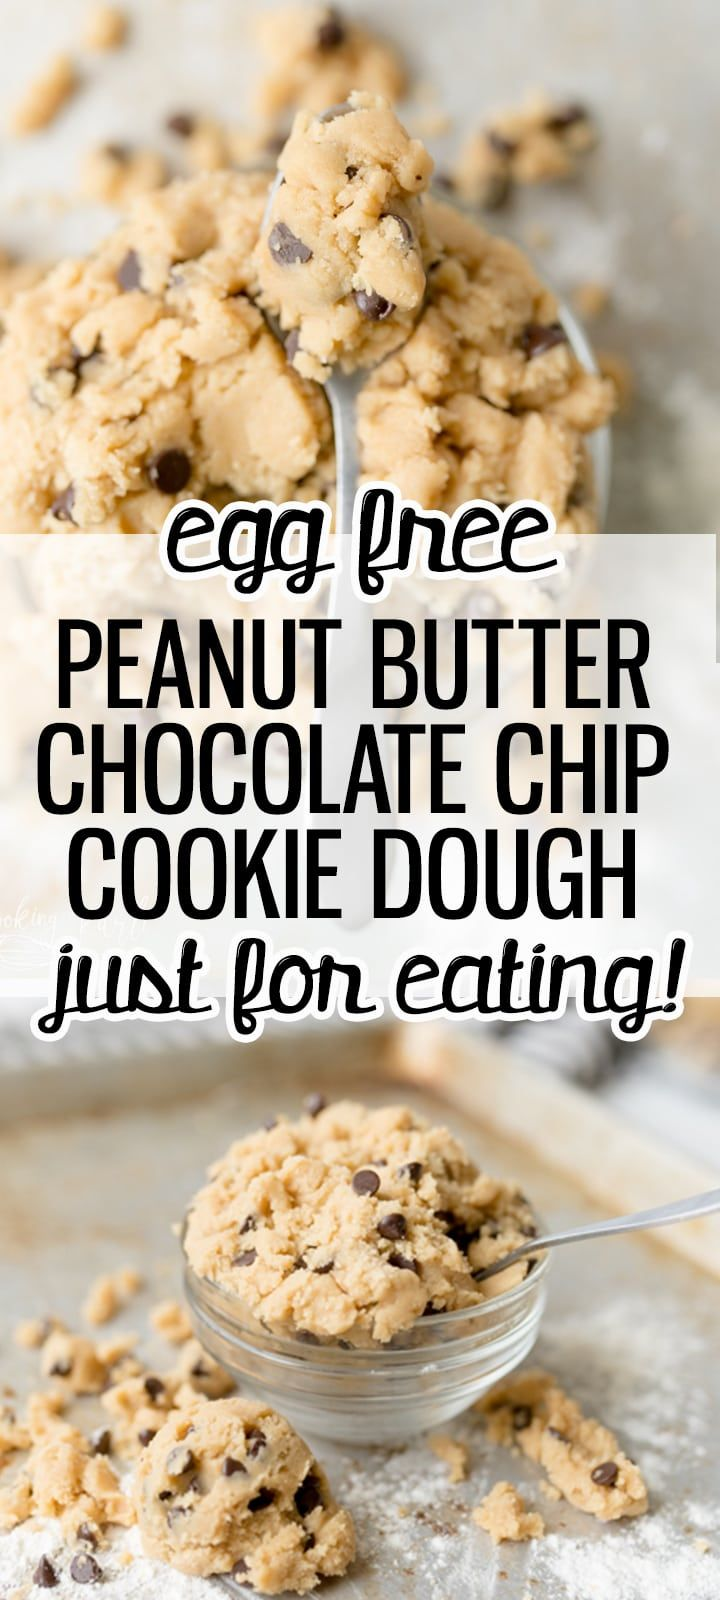 Edible Peanut Butter Chocolate Chip Cookie Dough - Cooking With Karli